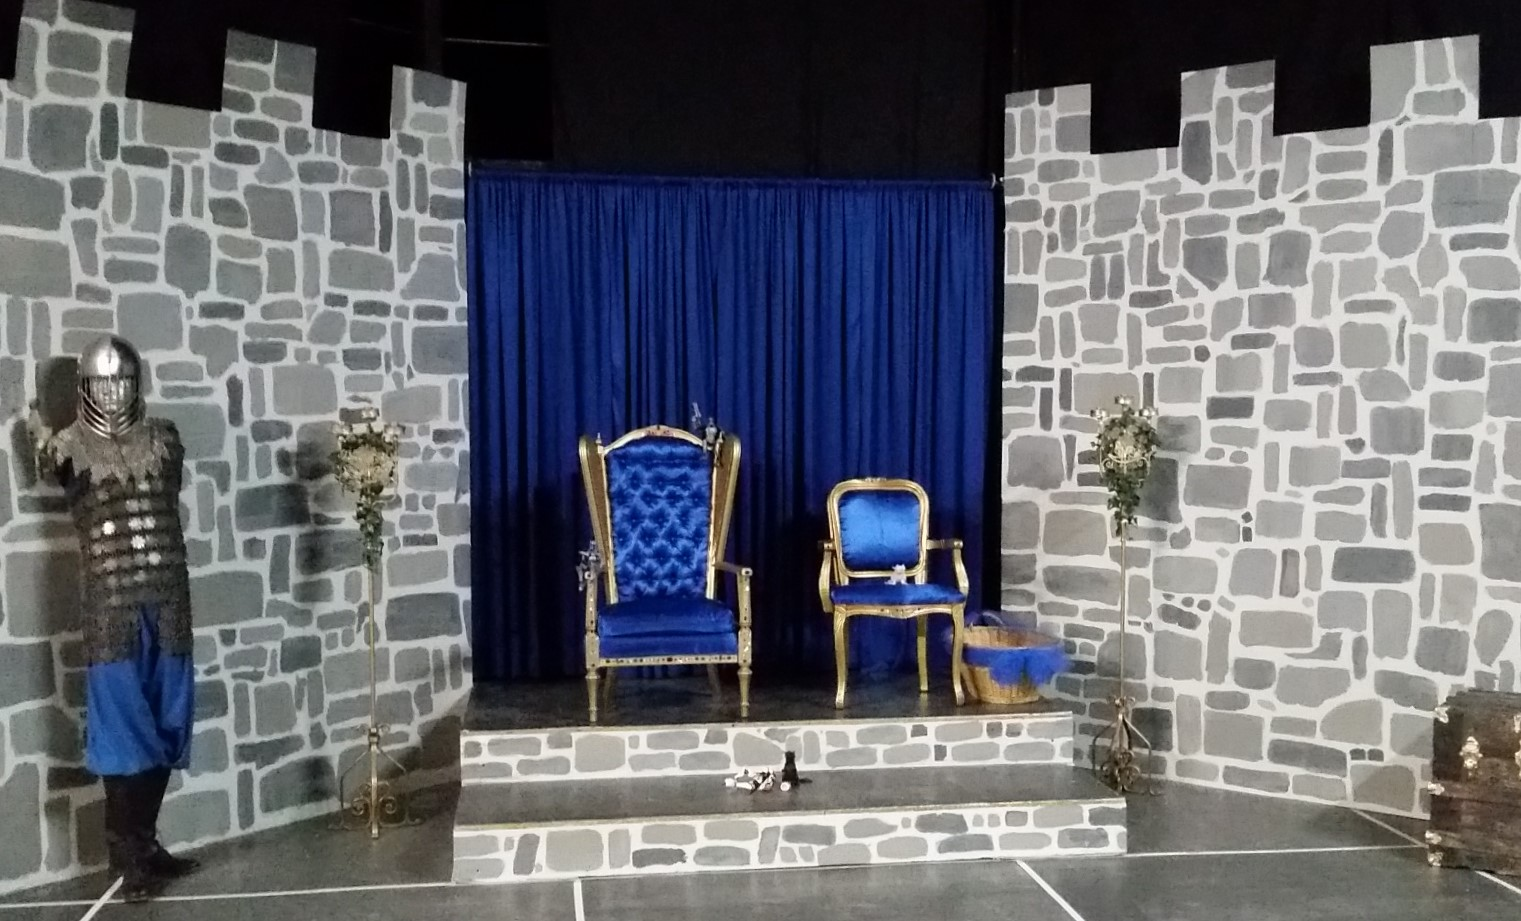 The castle throne room